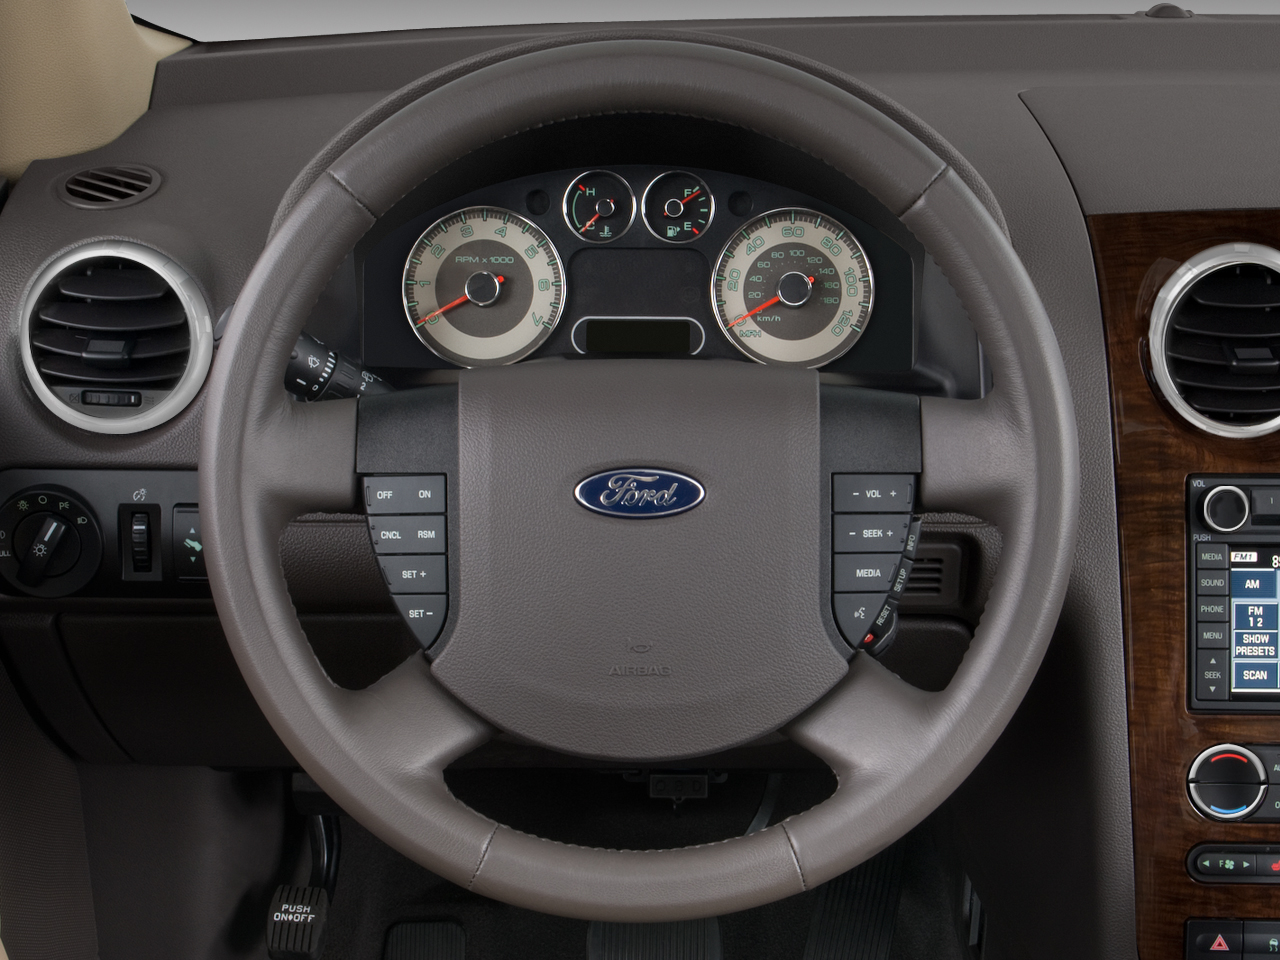 http://st.automobilemag.com/uploads/sites/10/2015/11/2008-ford-taurusx-limited-awd-suv-steering-wheel.png